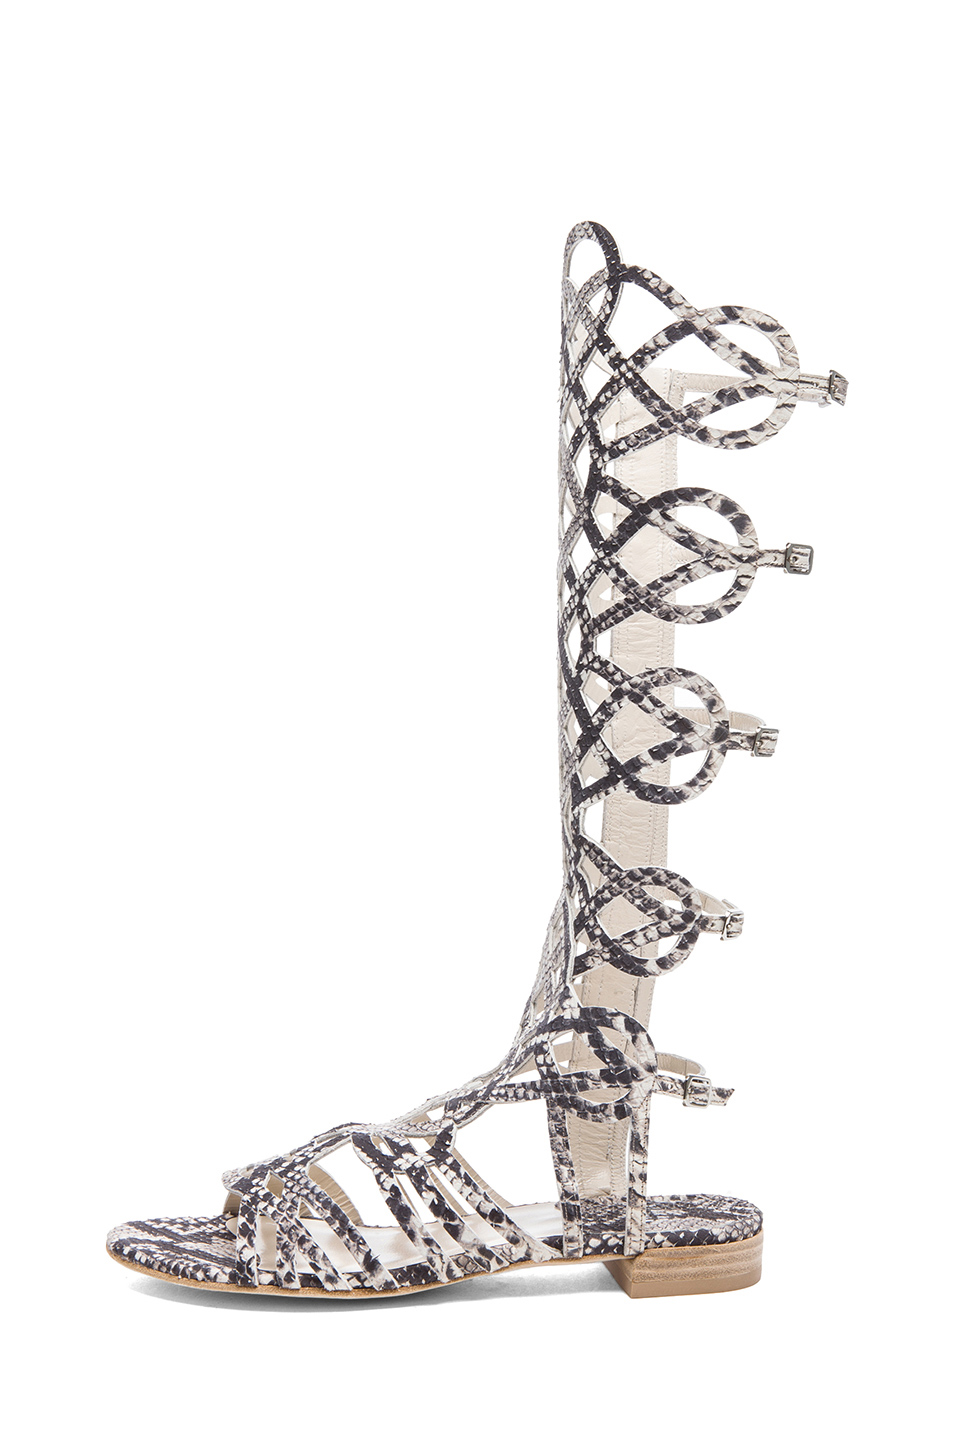 Stuart Weitzman Aphrodite Embossed Leather Sandals in Natural Snake